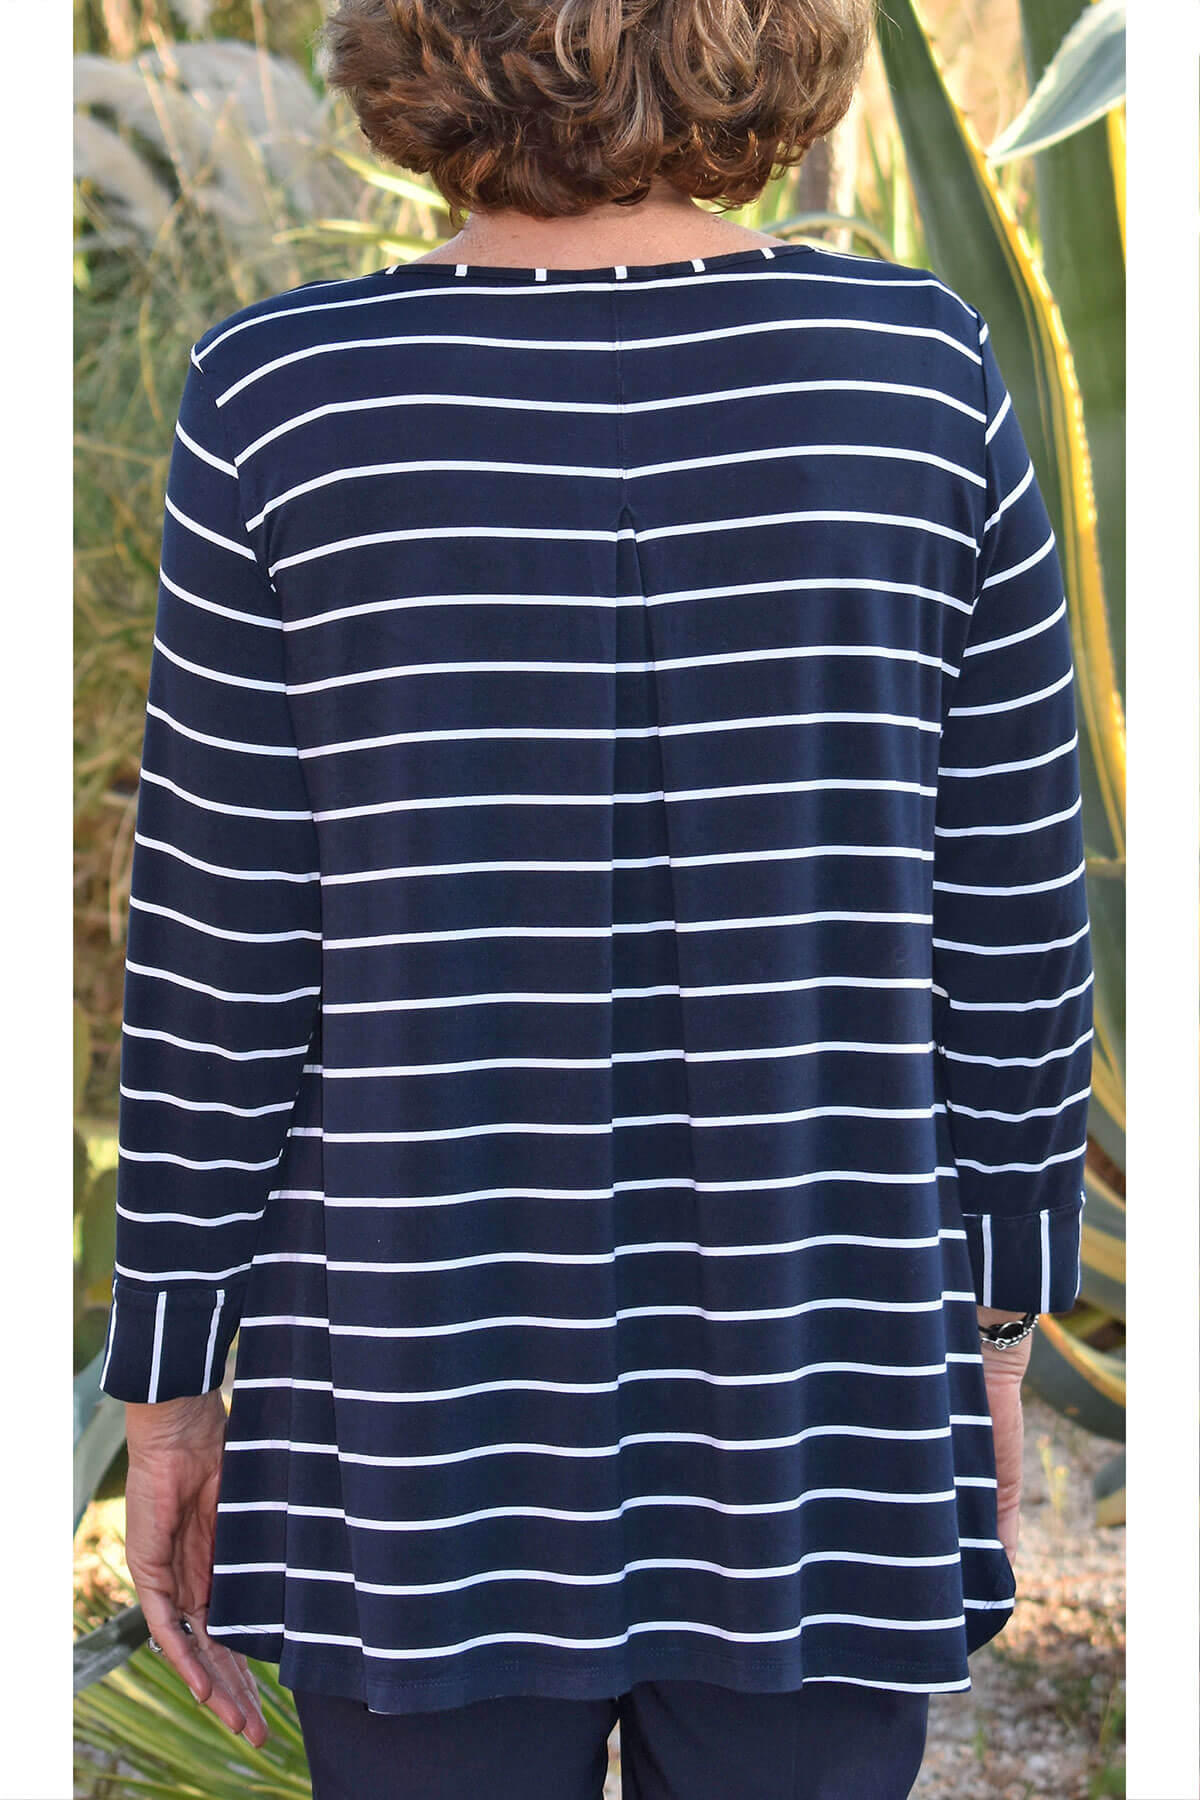 Kasbah Talaya striped t-shirt